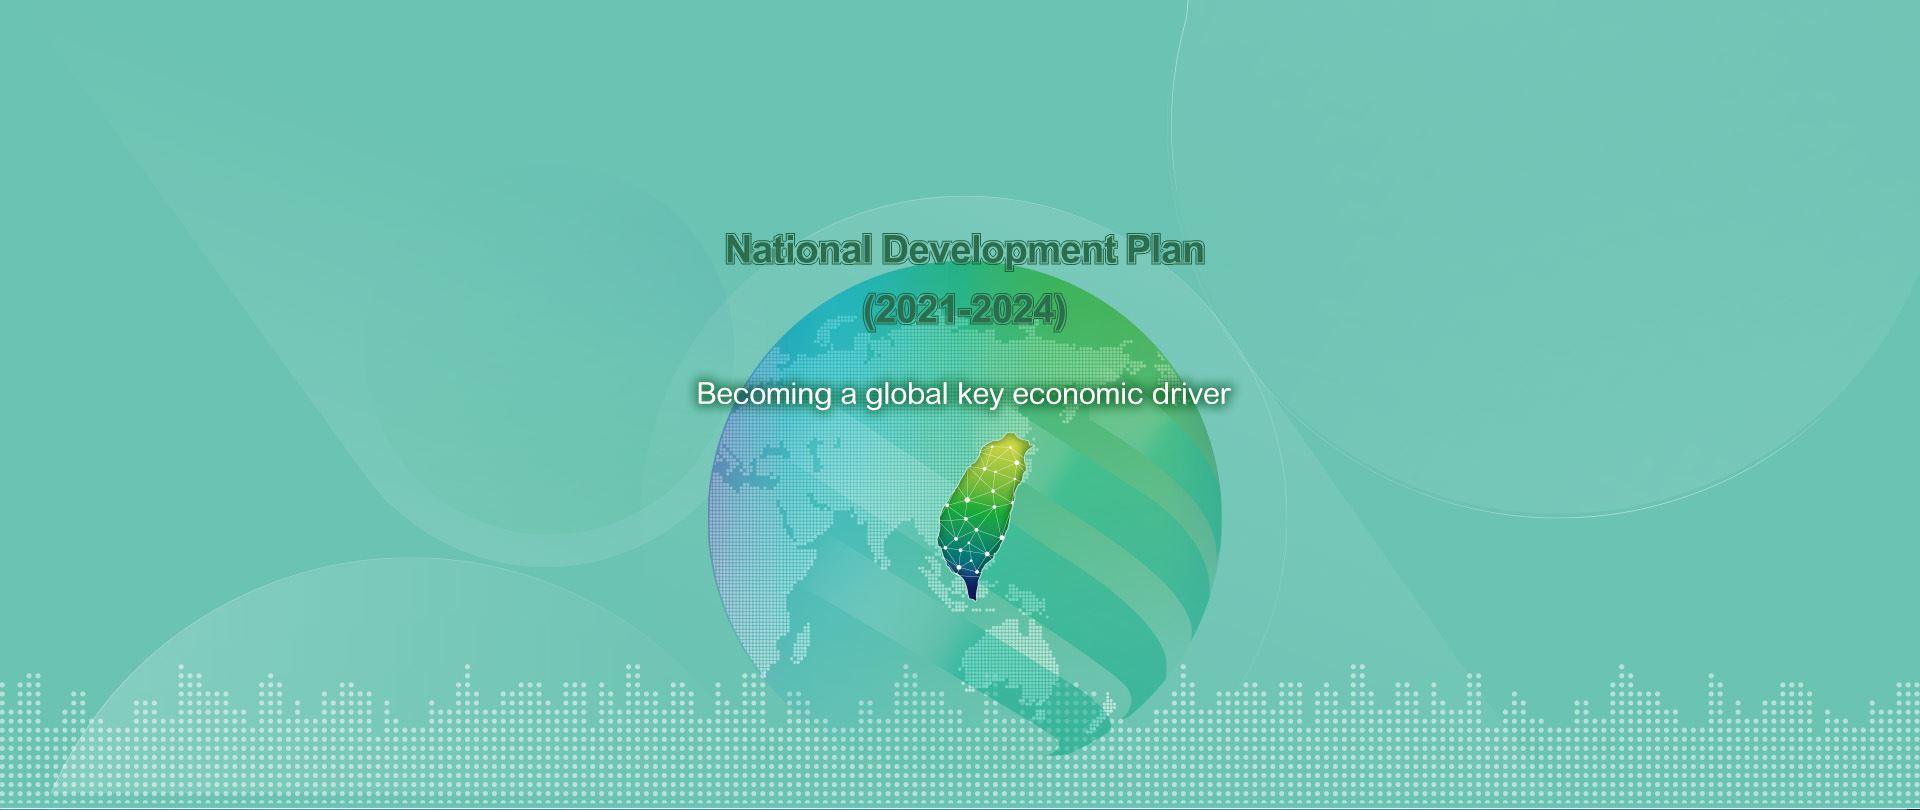 The 18th Medium-Term Plan ─ National Development Plan (2021-2024) was passed by Executive Yuan on July 16, 2020 and will be officially launched from 2021. Following the President's